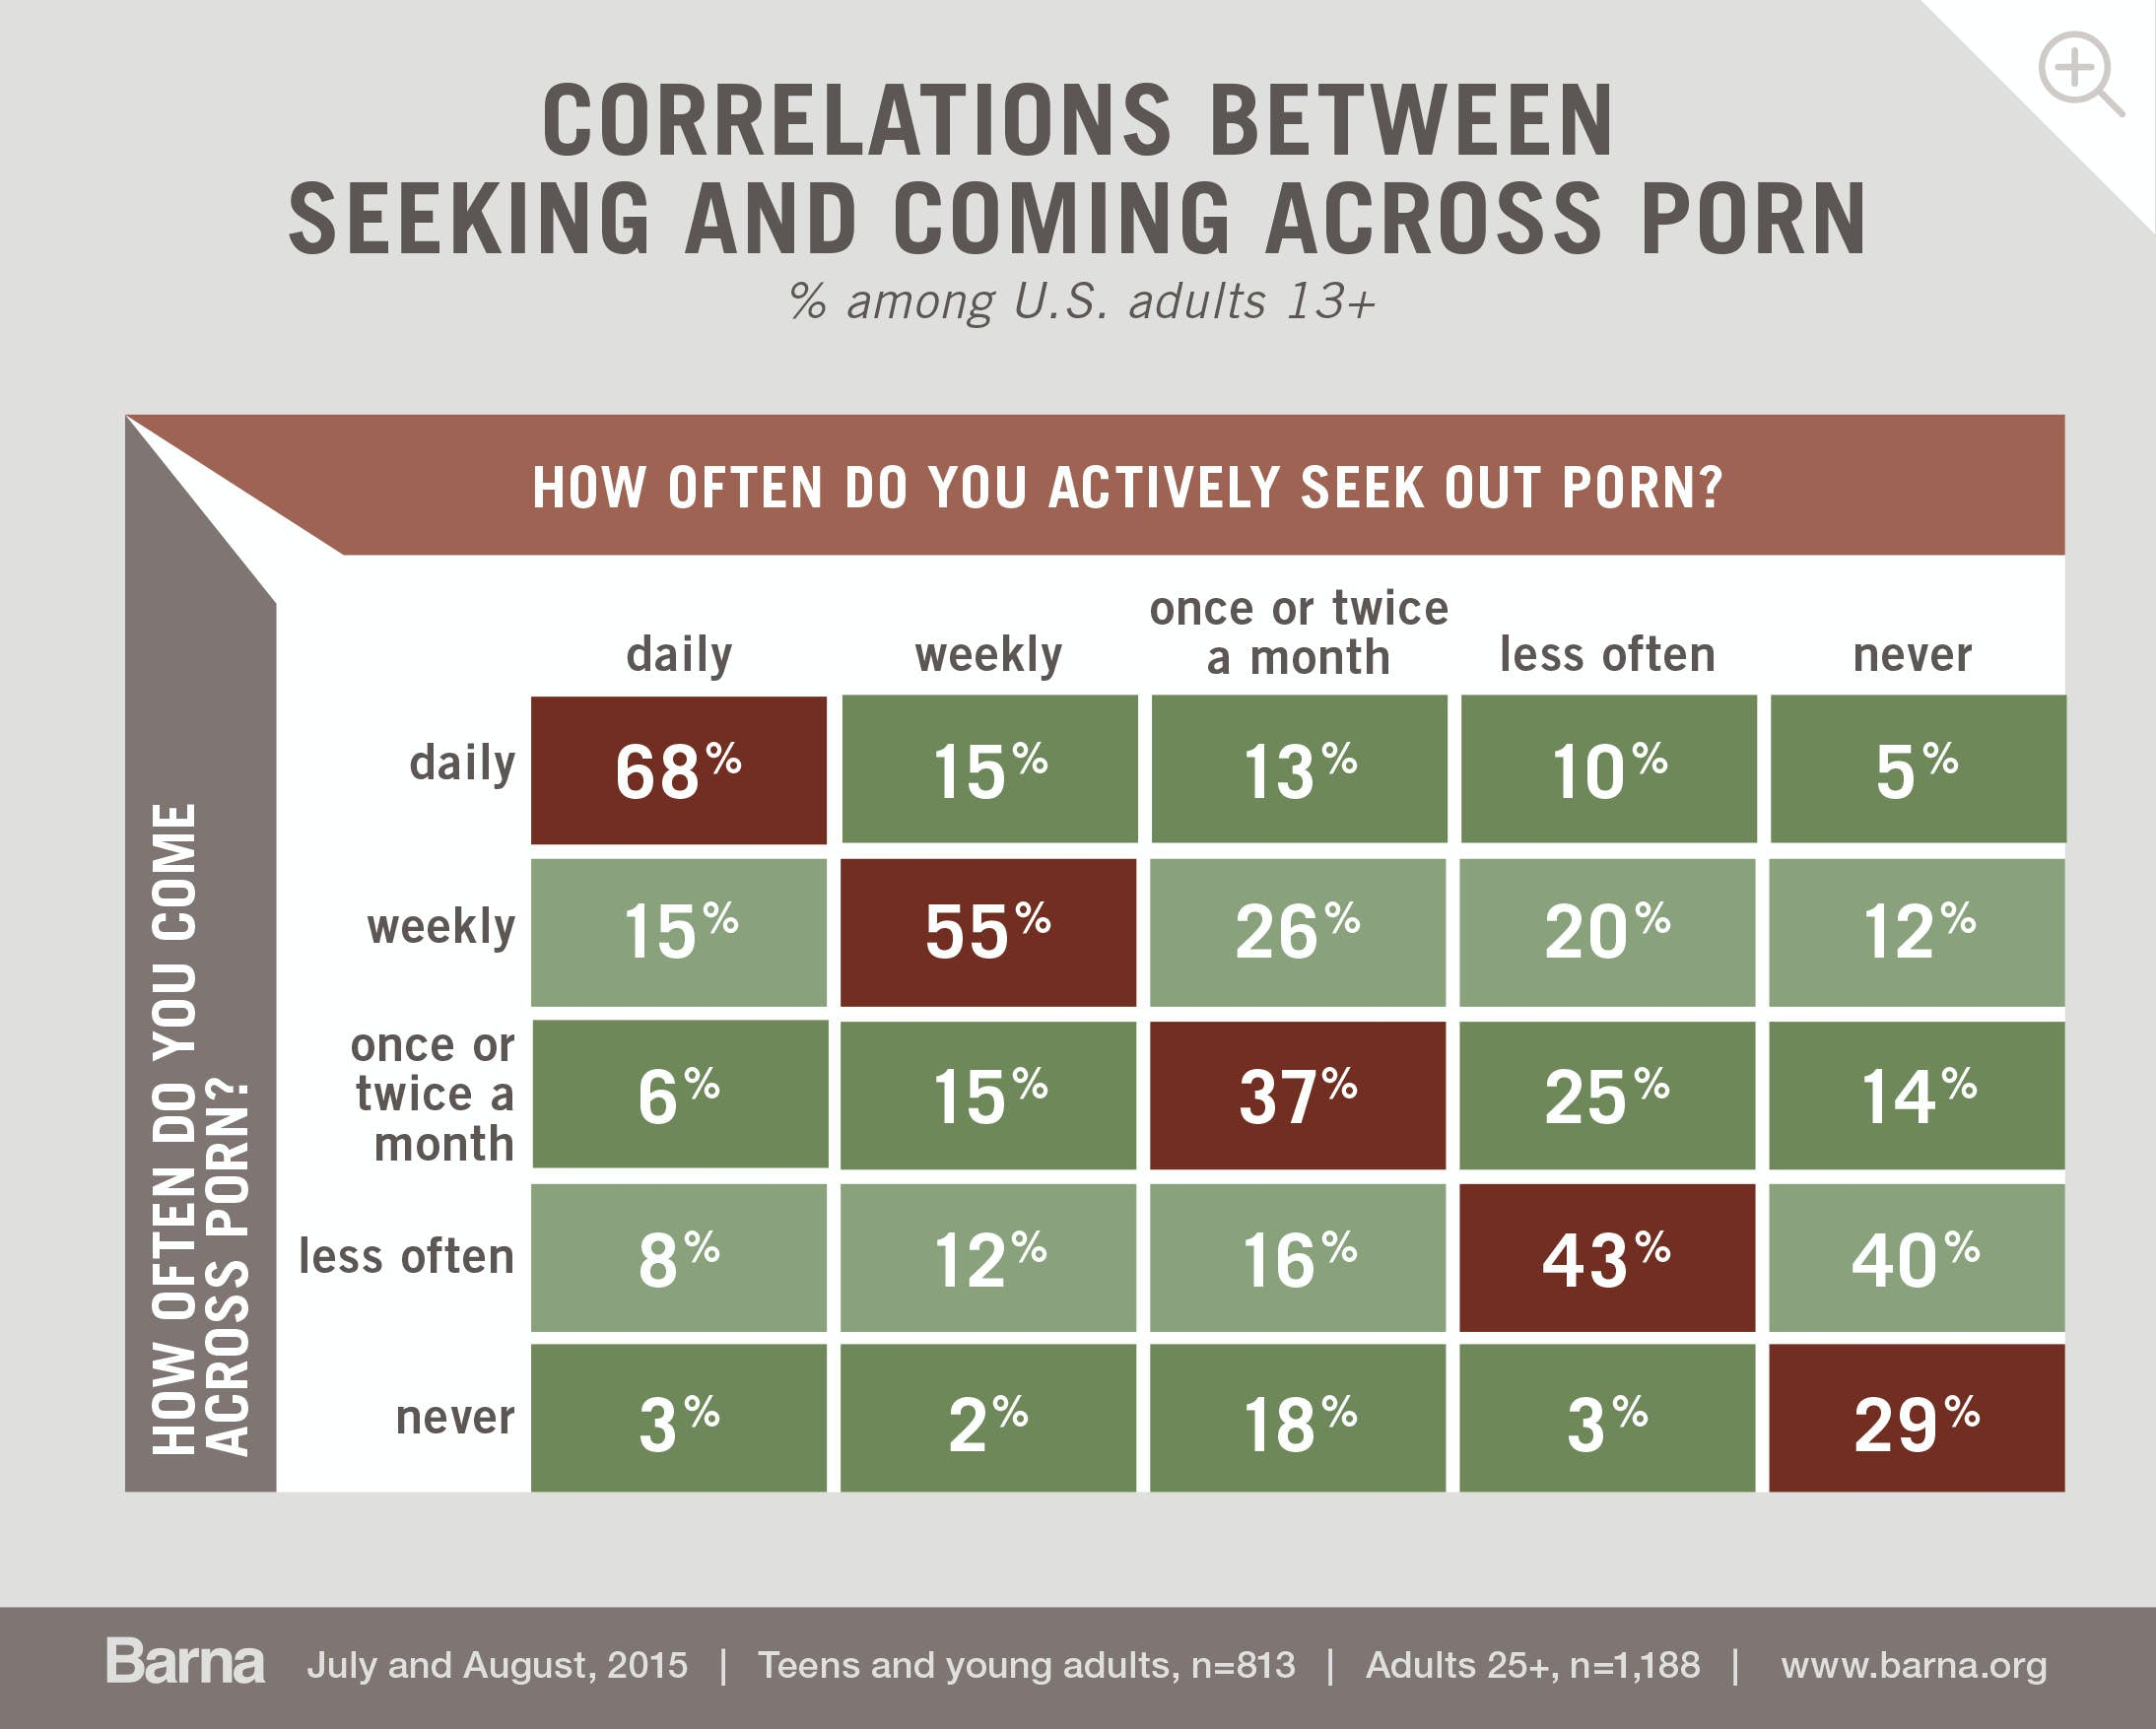 correlations between seeking and coming across porn